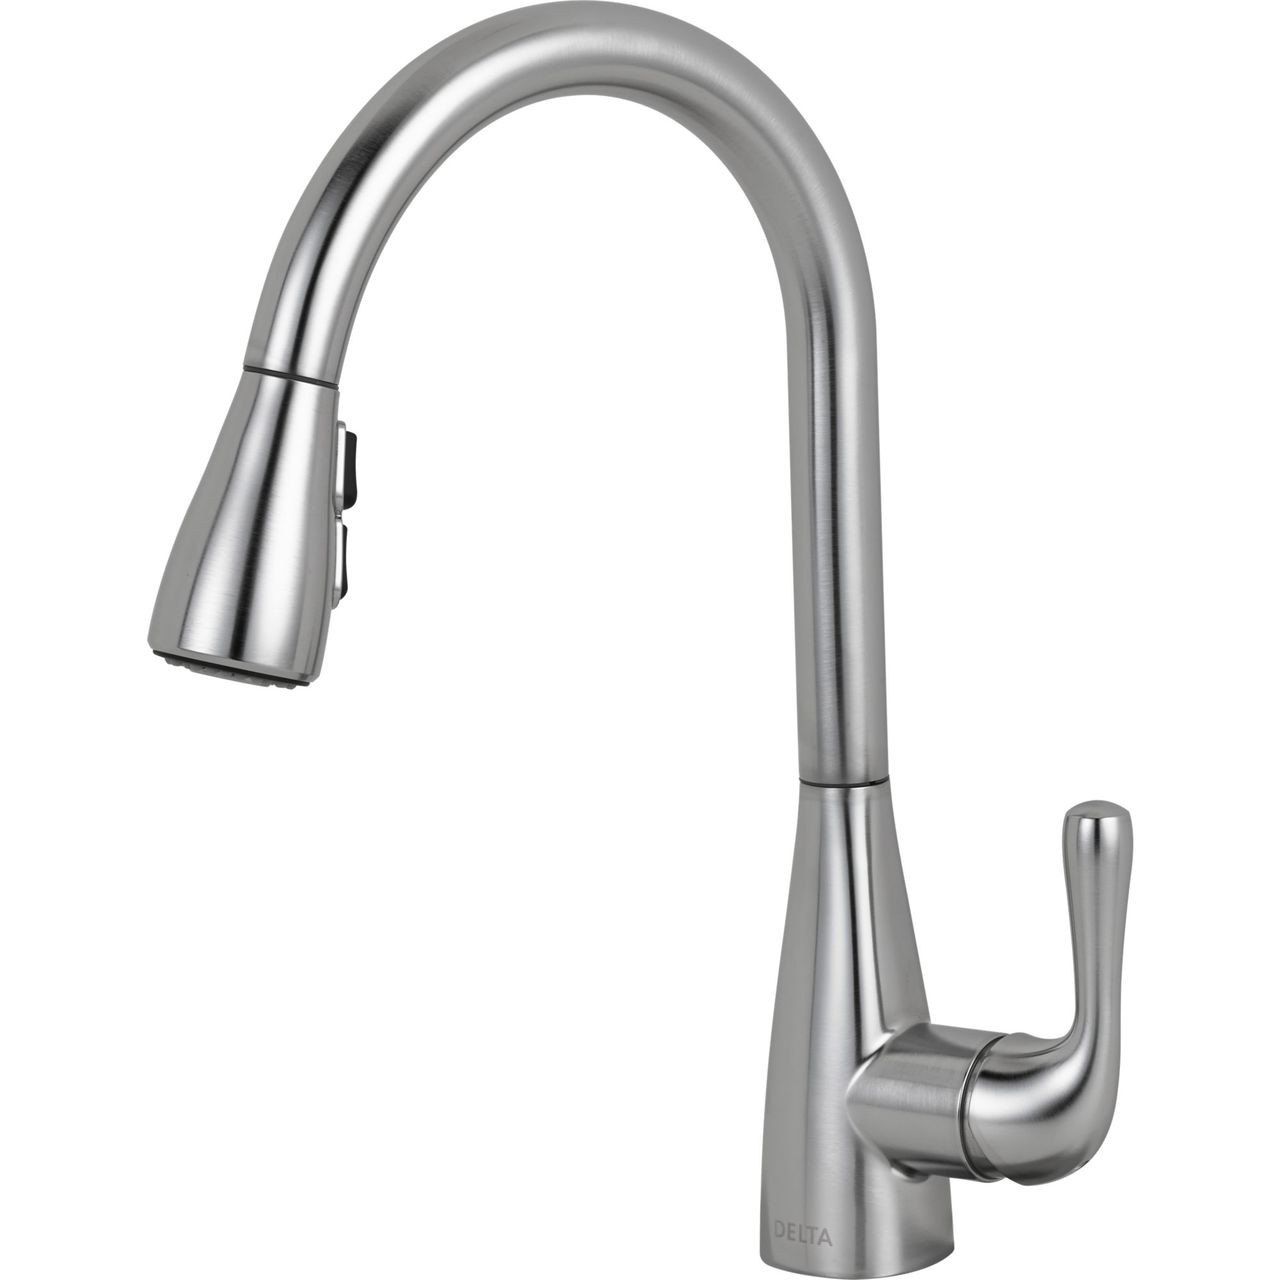 Delta Marley Single Handle Pull Down Kitchen Faucet